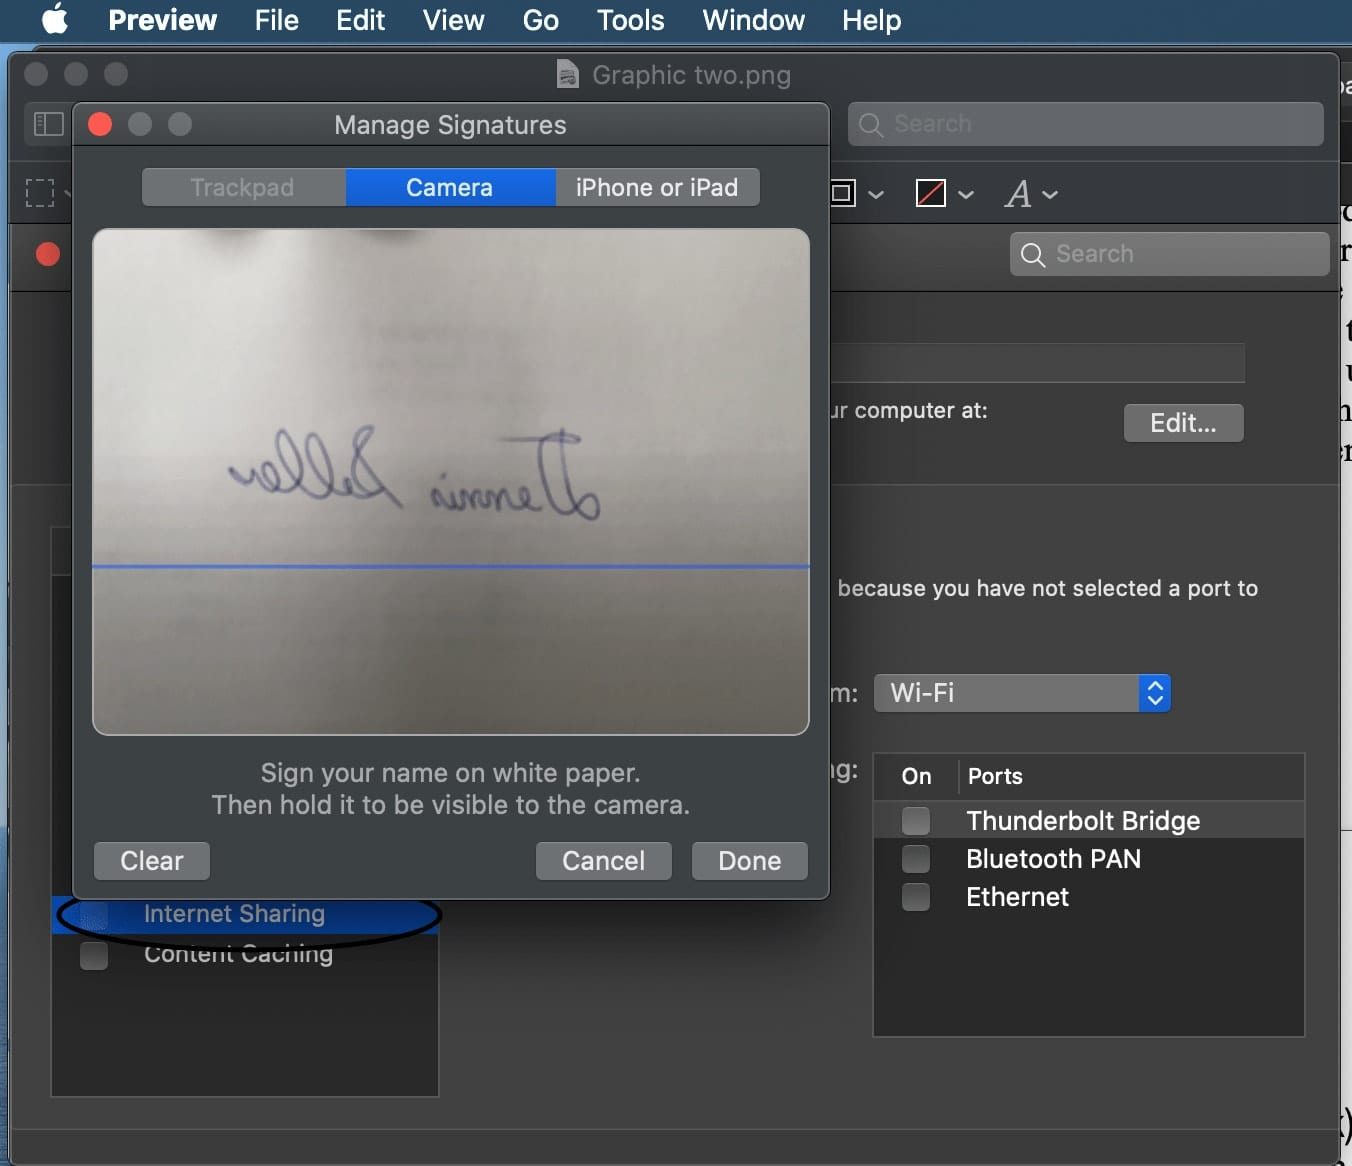 Preview can be used to create digital signatures